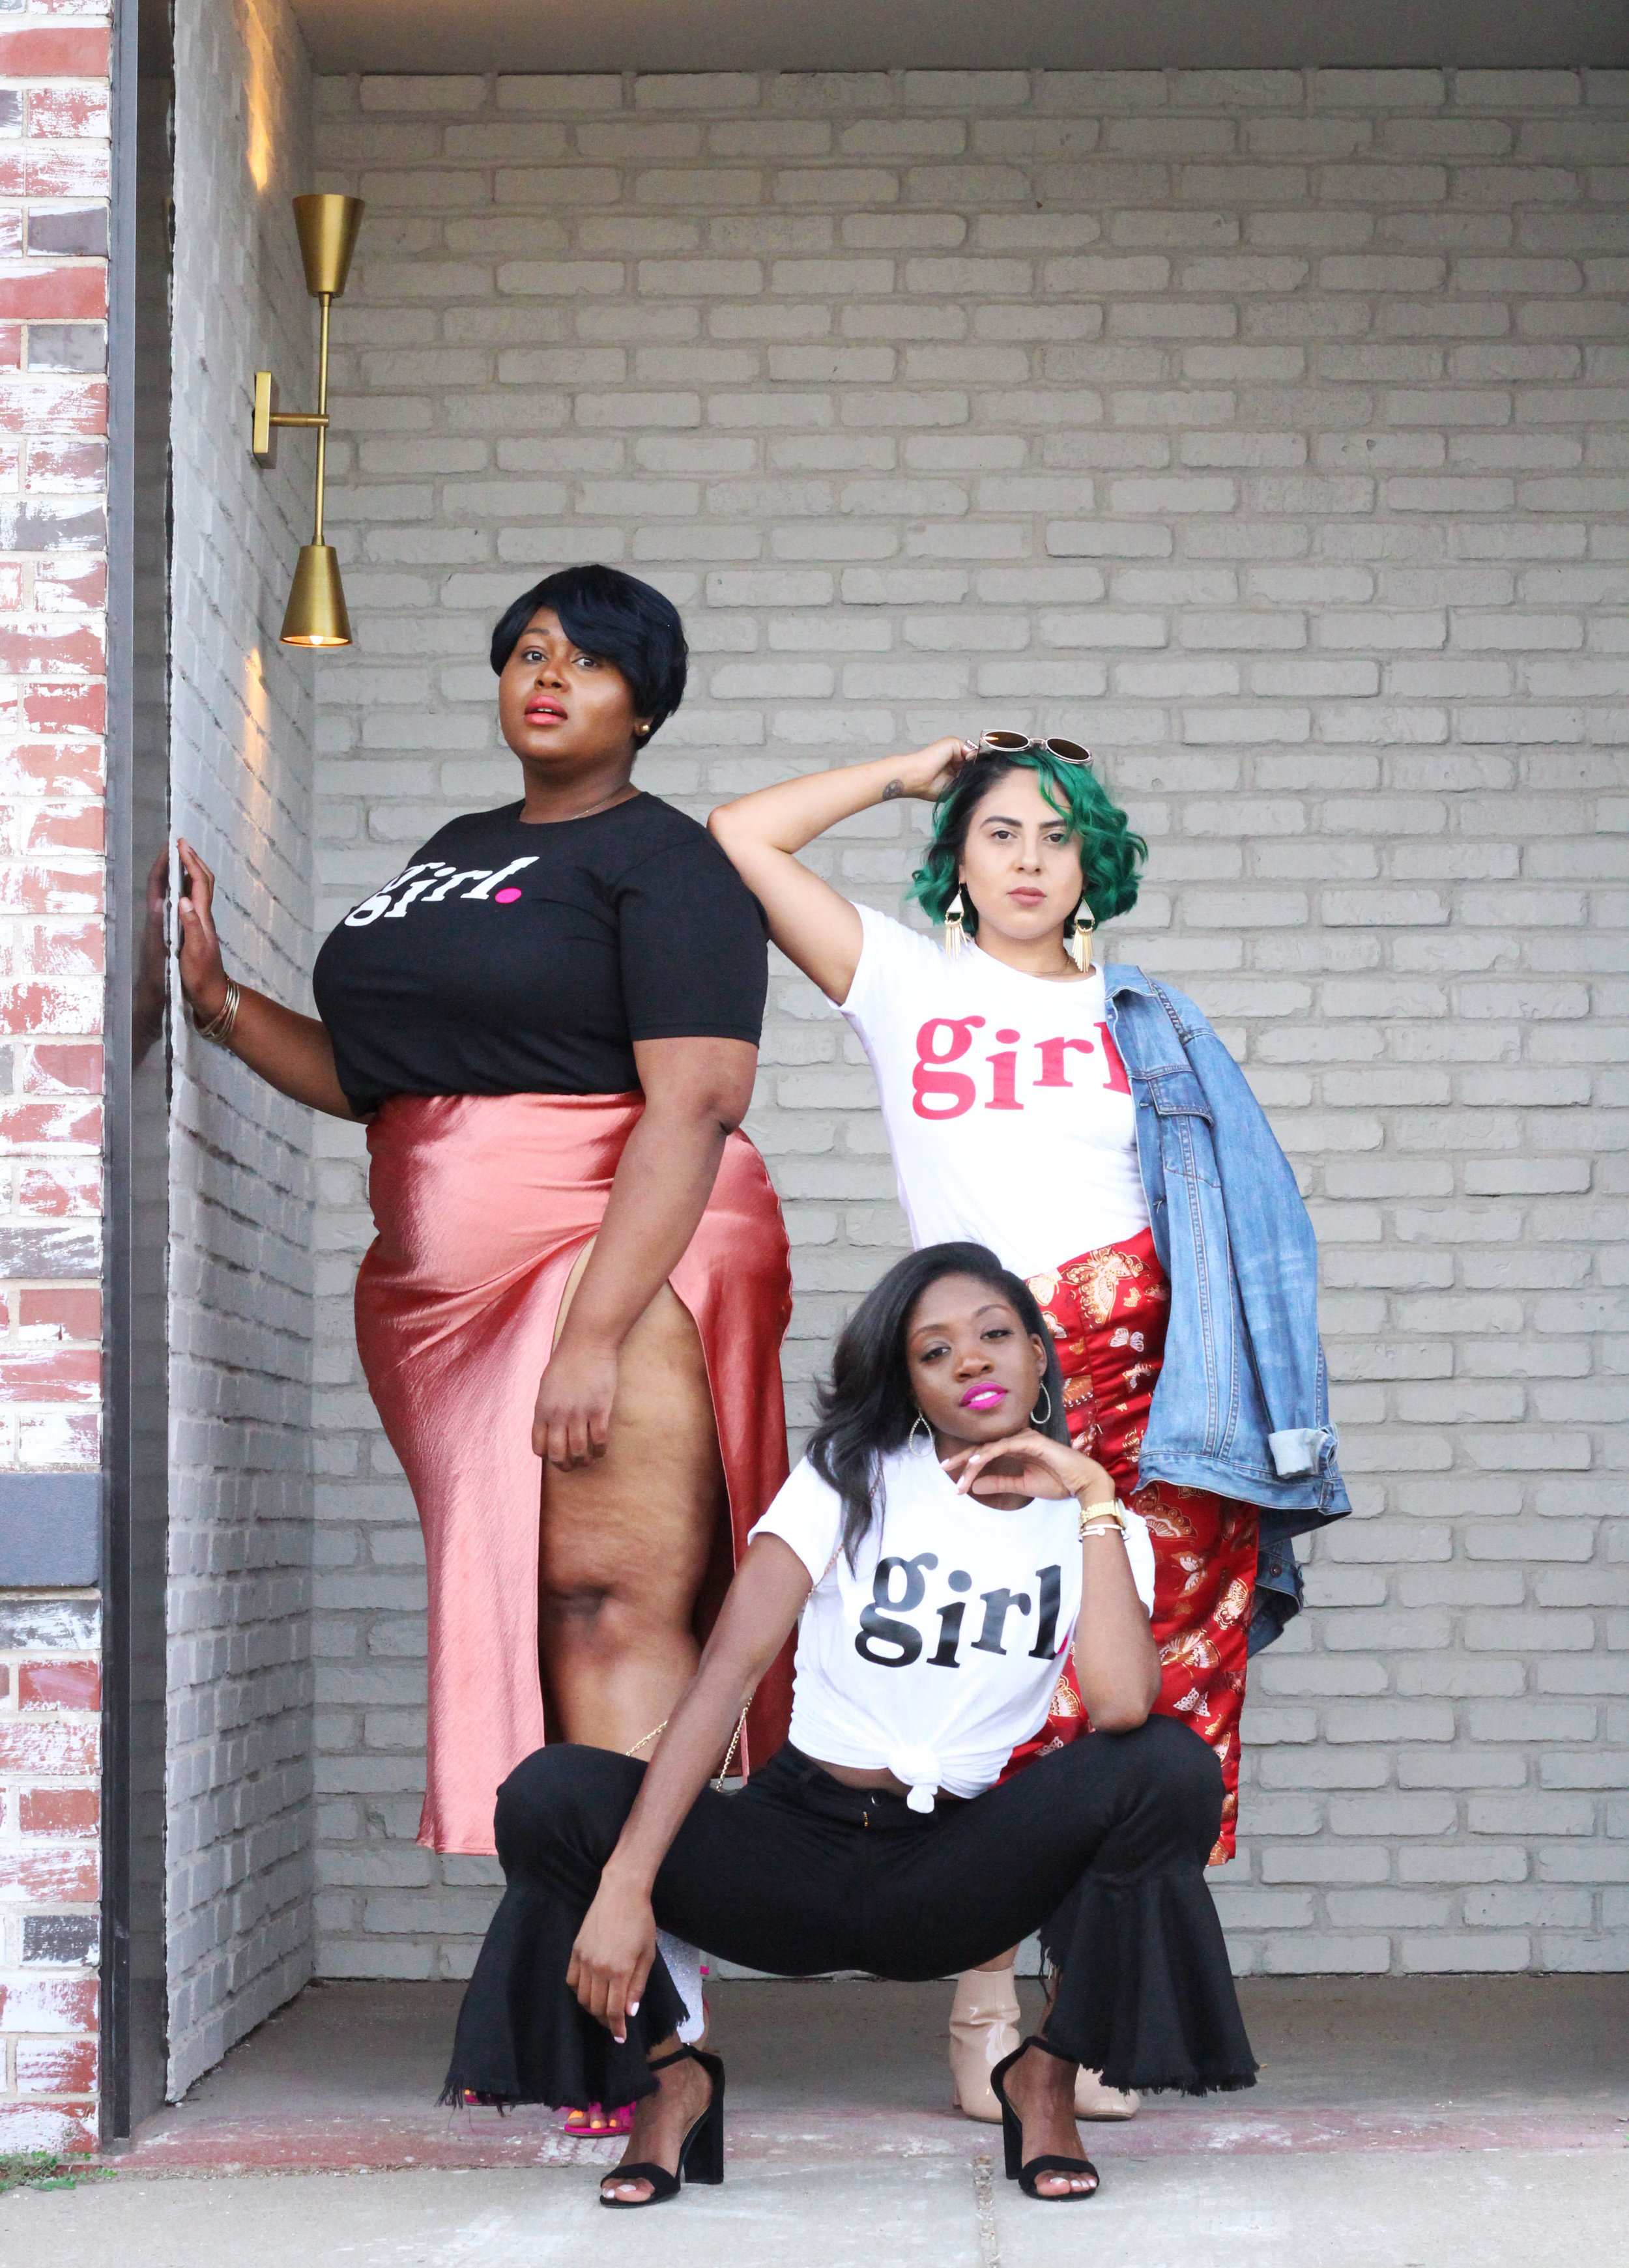 My Girl Stories Phoato Shoot planned by Jasmine Diane in Kansas City featuring Antonia Martin, Esmeralda Lole and Angela Hayes.